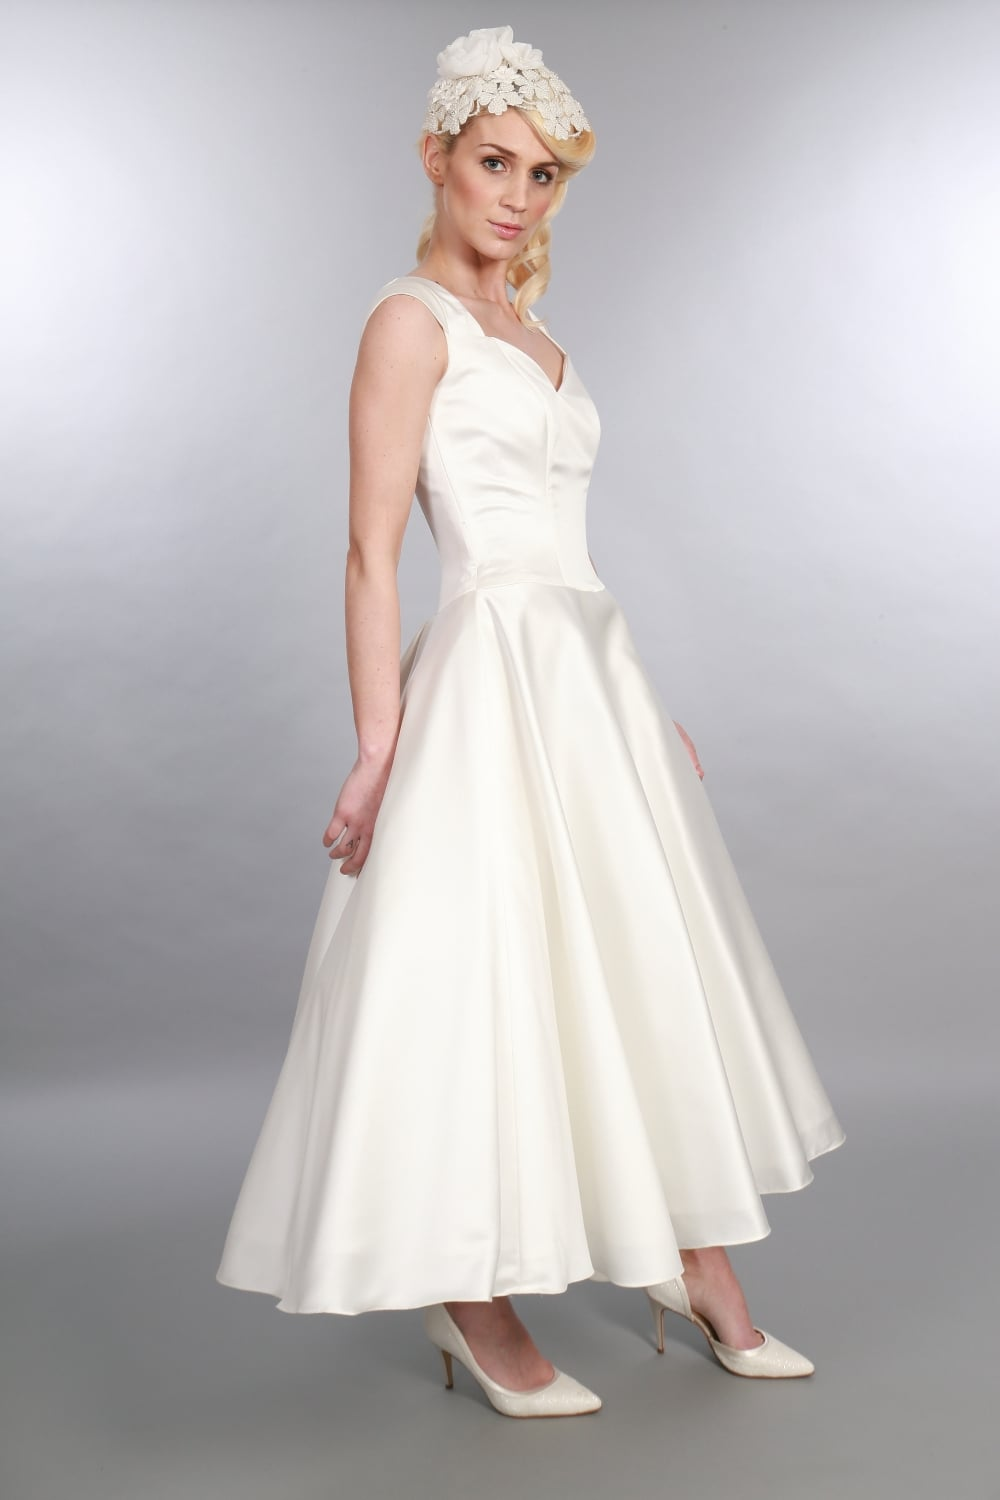 1950 s wedding dresses wedding dresses asian for 1950s style wedding dresses for sale